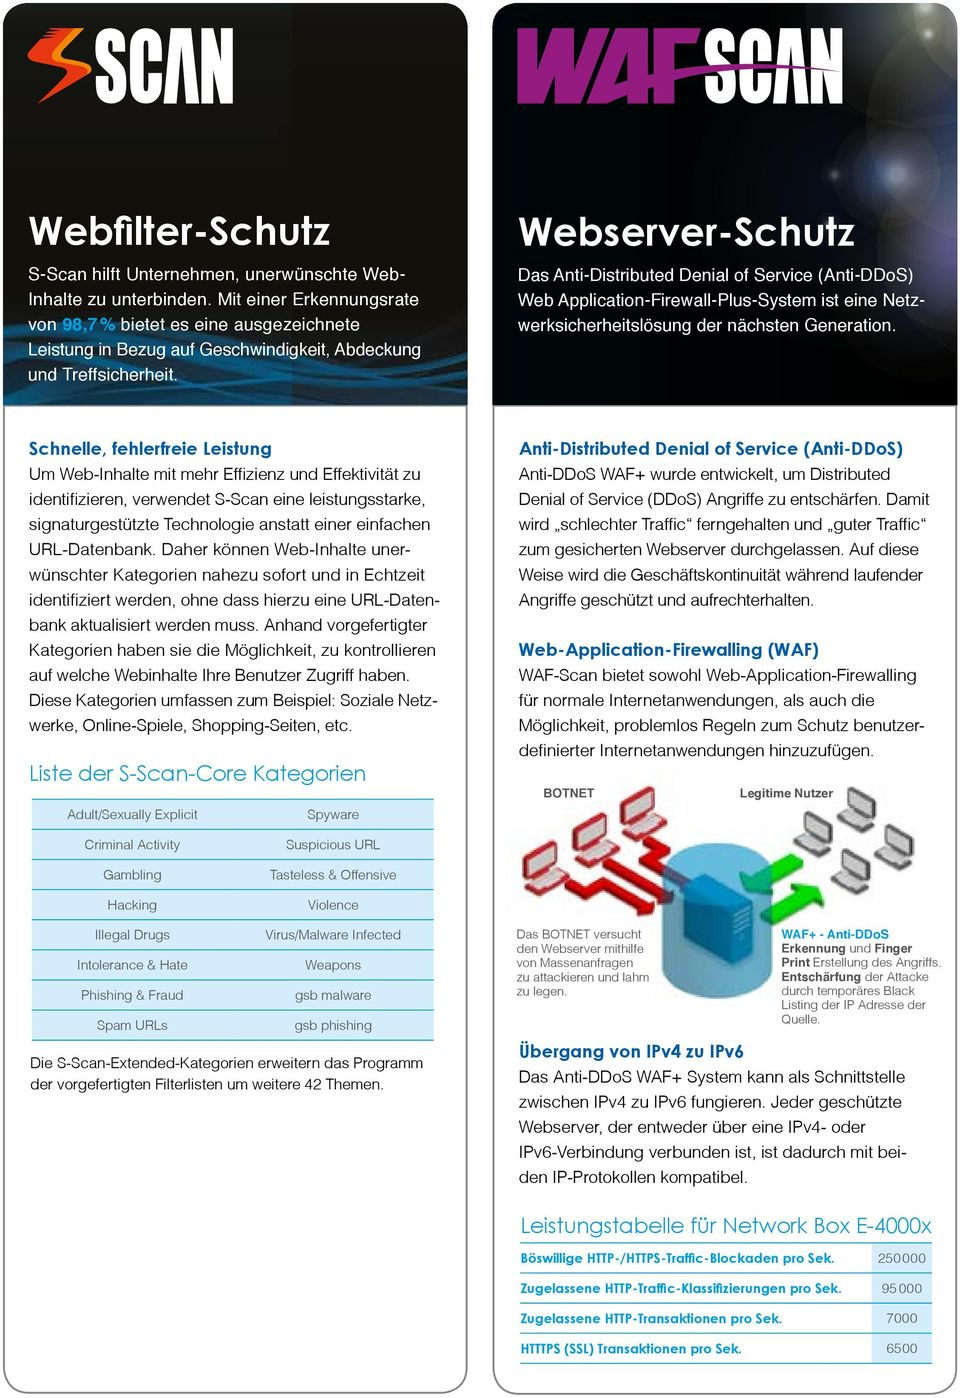 Webserver-Schutz Das Anti-Distributed Denial of Service (Anti-DDoS) Web Application-Firewall-Plus-System ist eine Netzwerksicherheitslösung der nächsten Generation.